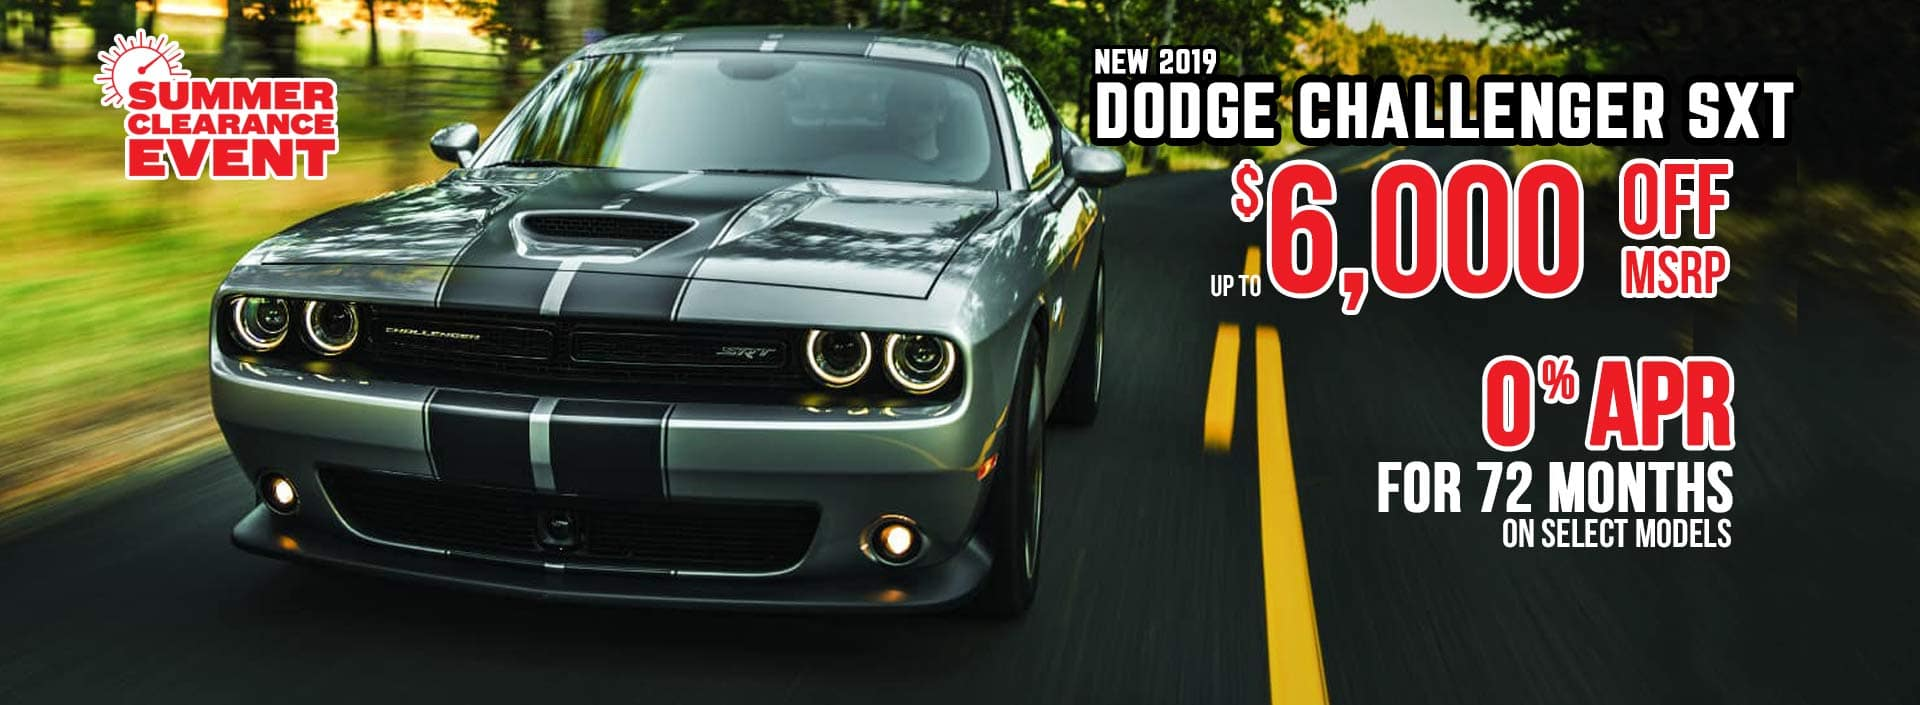 Dodge Dealership Columbia Sc >> Columbia Chrysler Dodge Jeep Ram Fiat New And Used Car Dealer